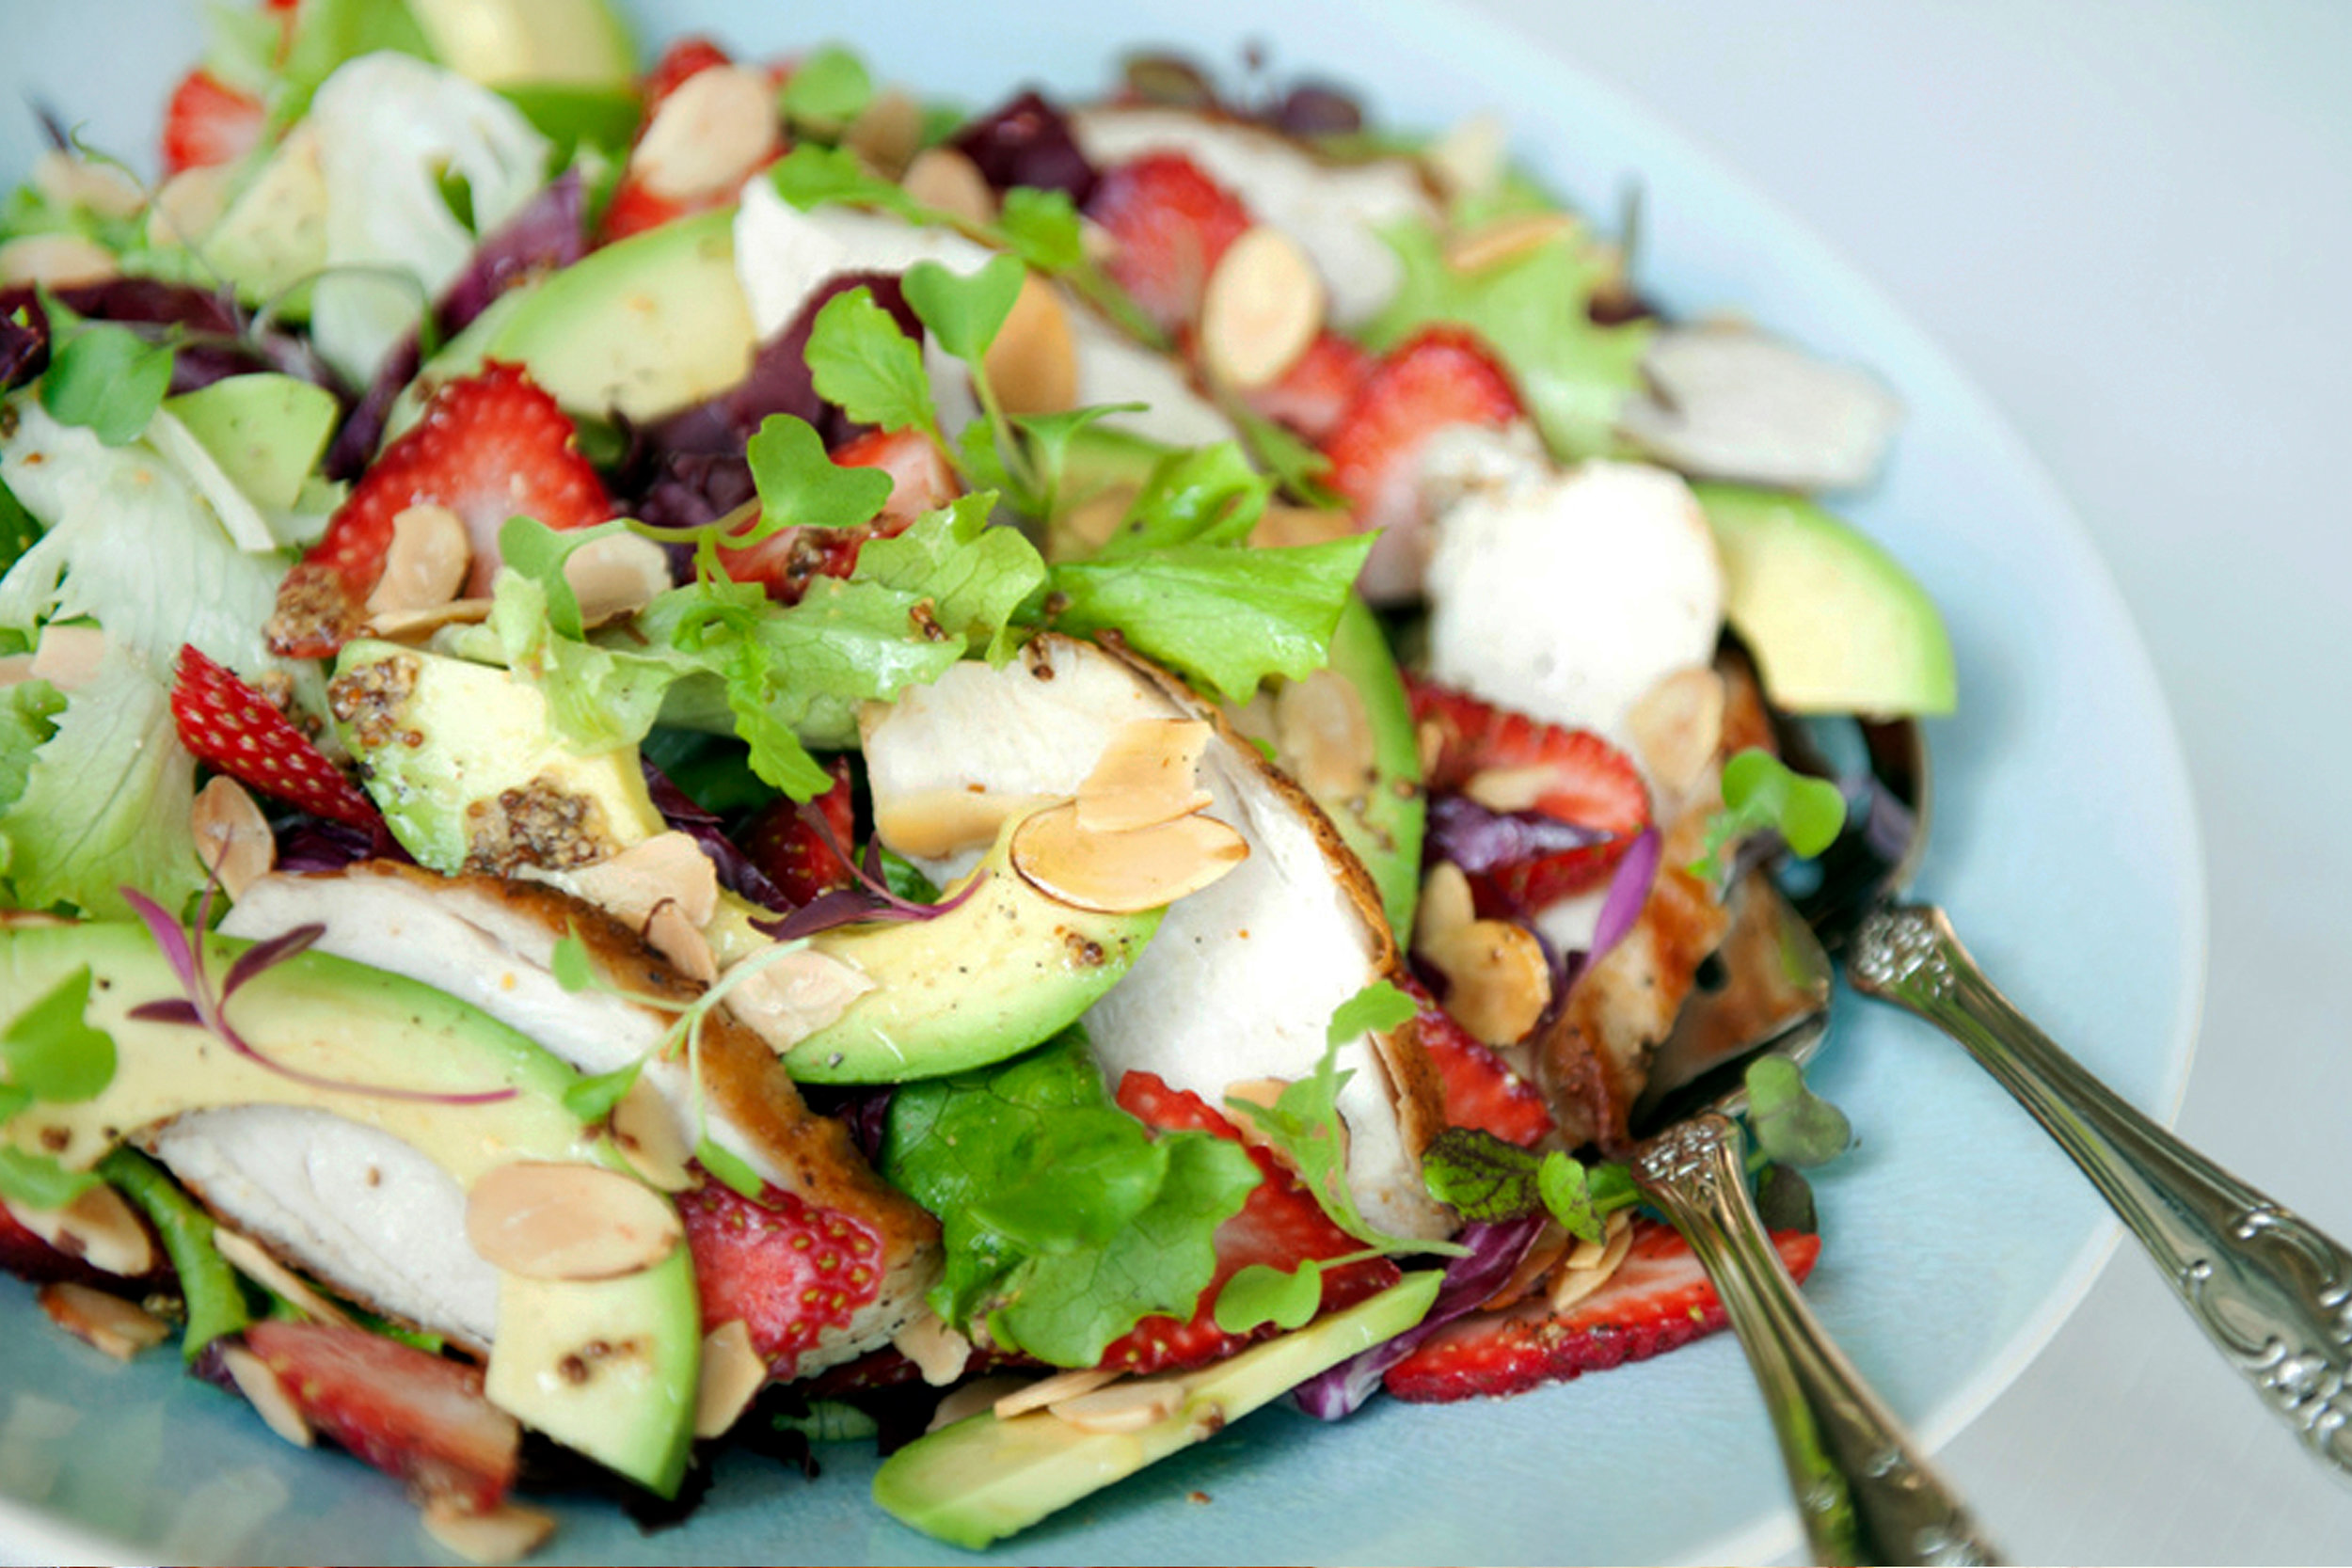 LOW CARB KETO CHICKEN AVOCADO AND STRAWBERRY SALAD RECIPE.jpg